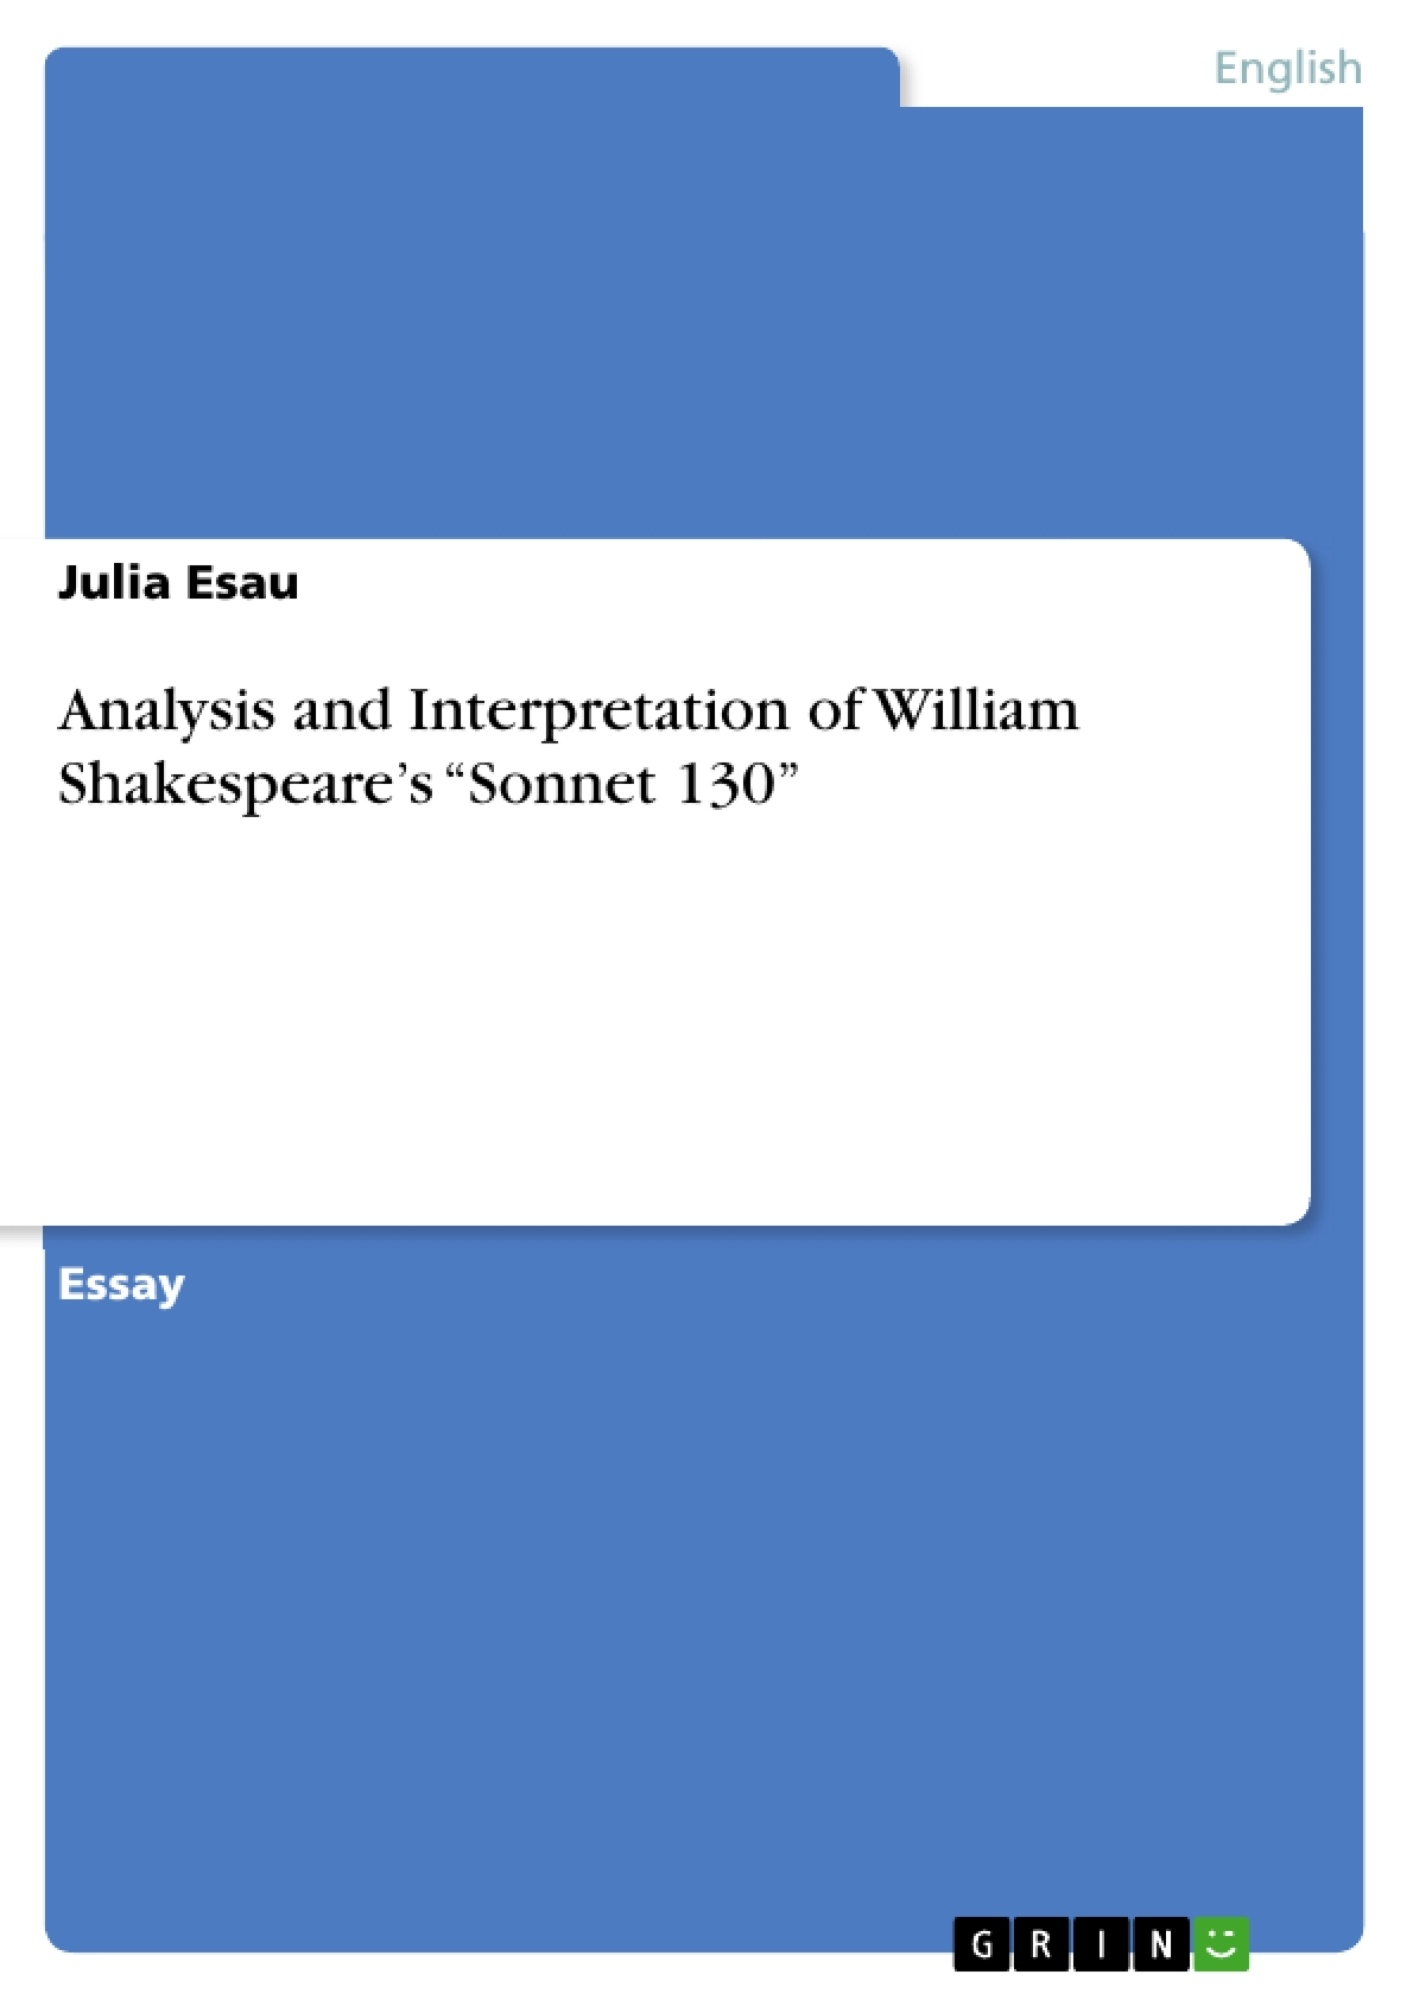 analysis and interpretation of william shakespeare s ldquo sonnet  analysis and interpretation of william shakespeare s ldquosonnet 130rdquo publish your master s thesis bachelor s thesis essay or term paper